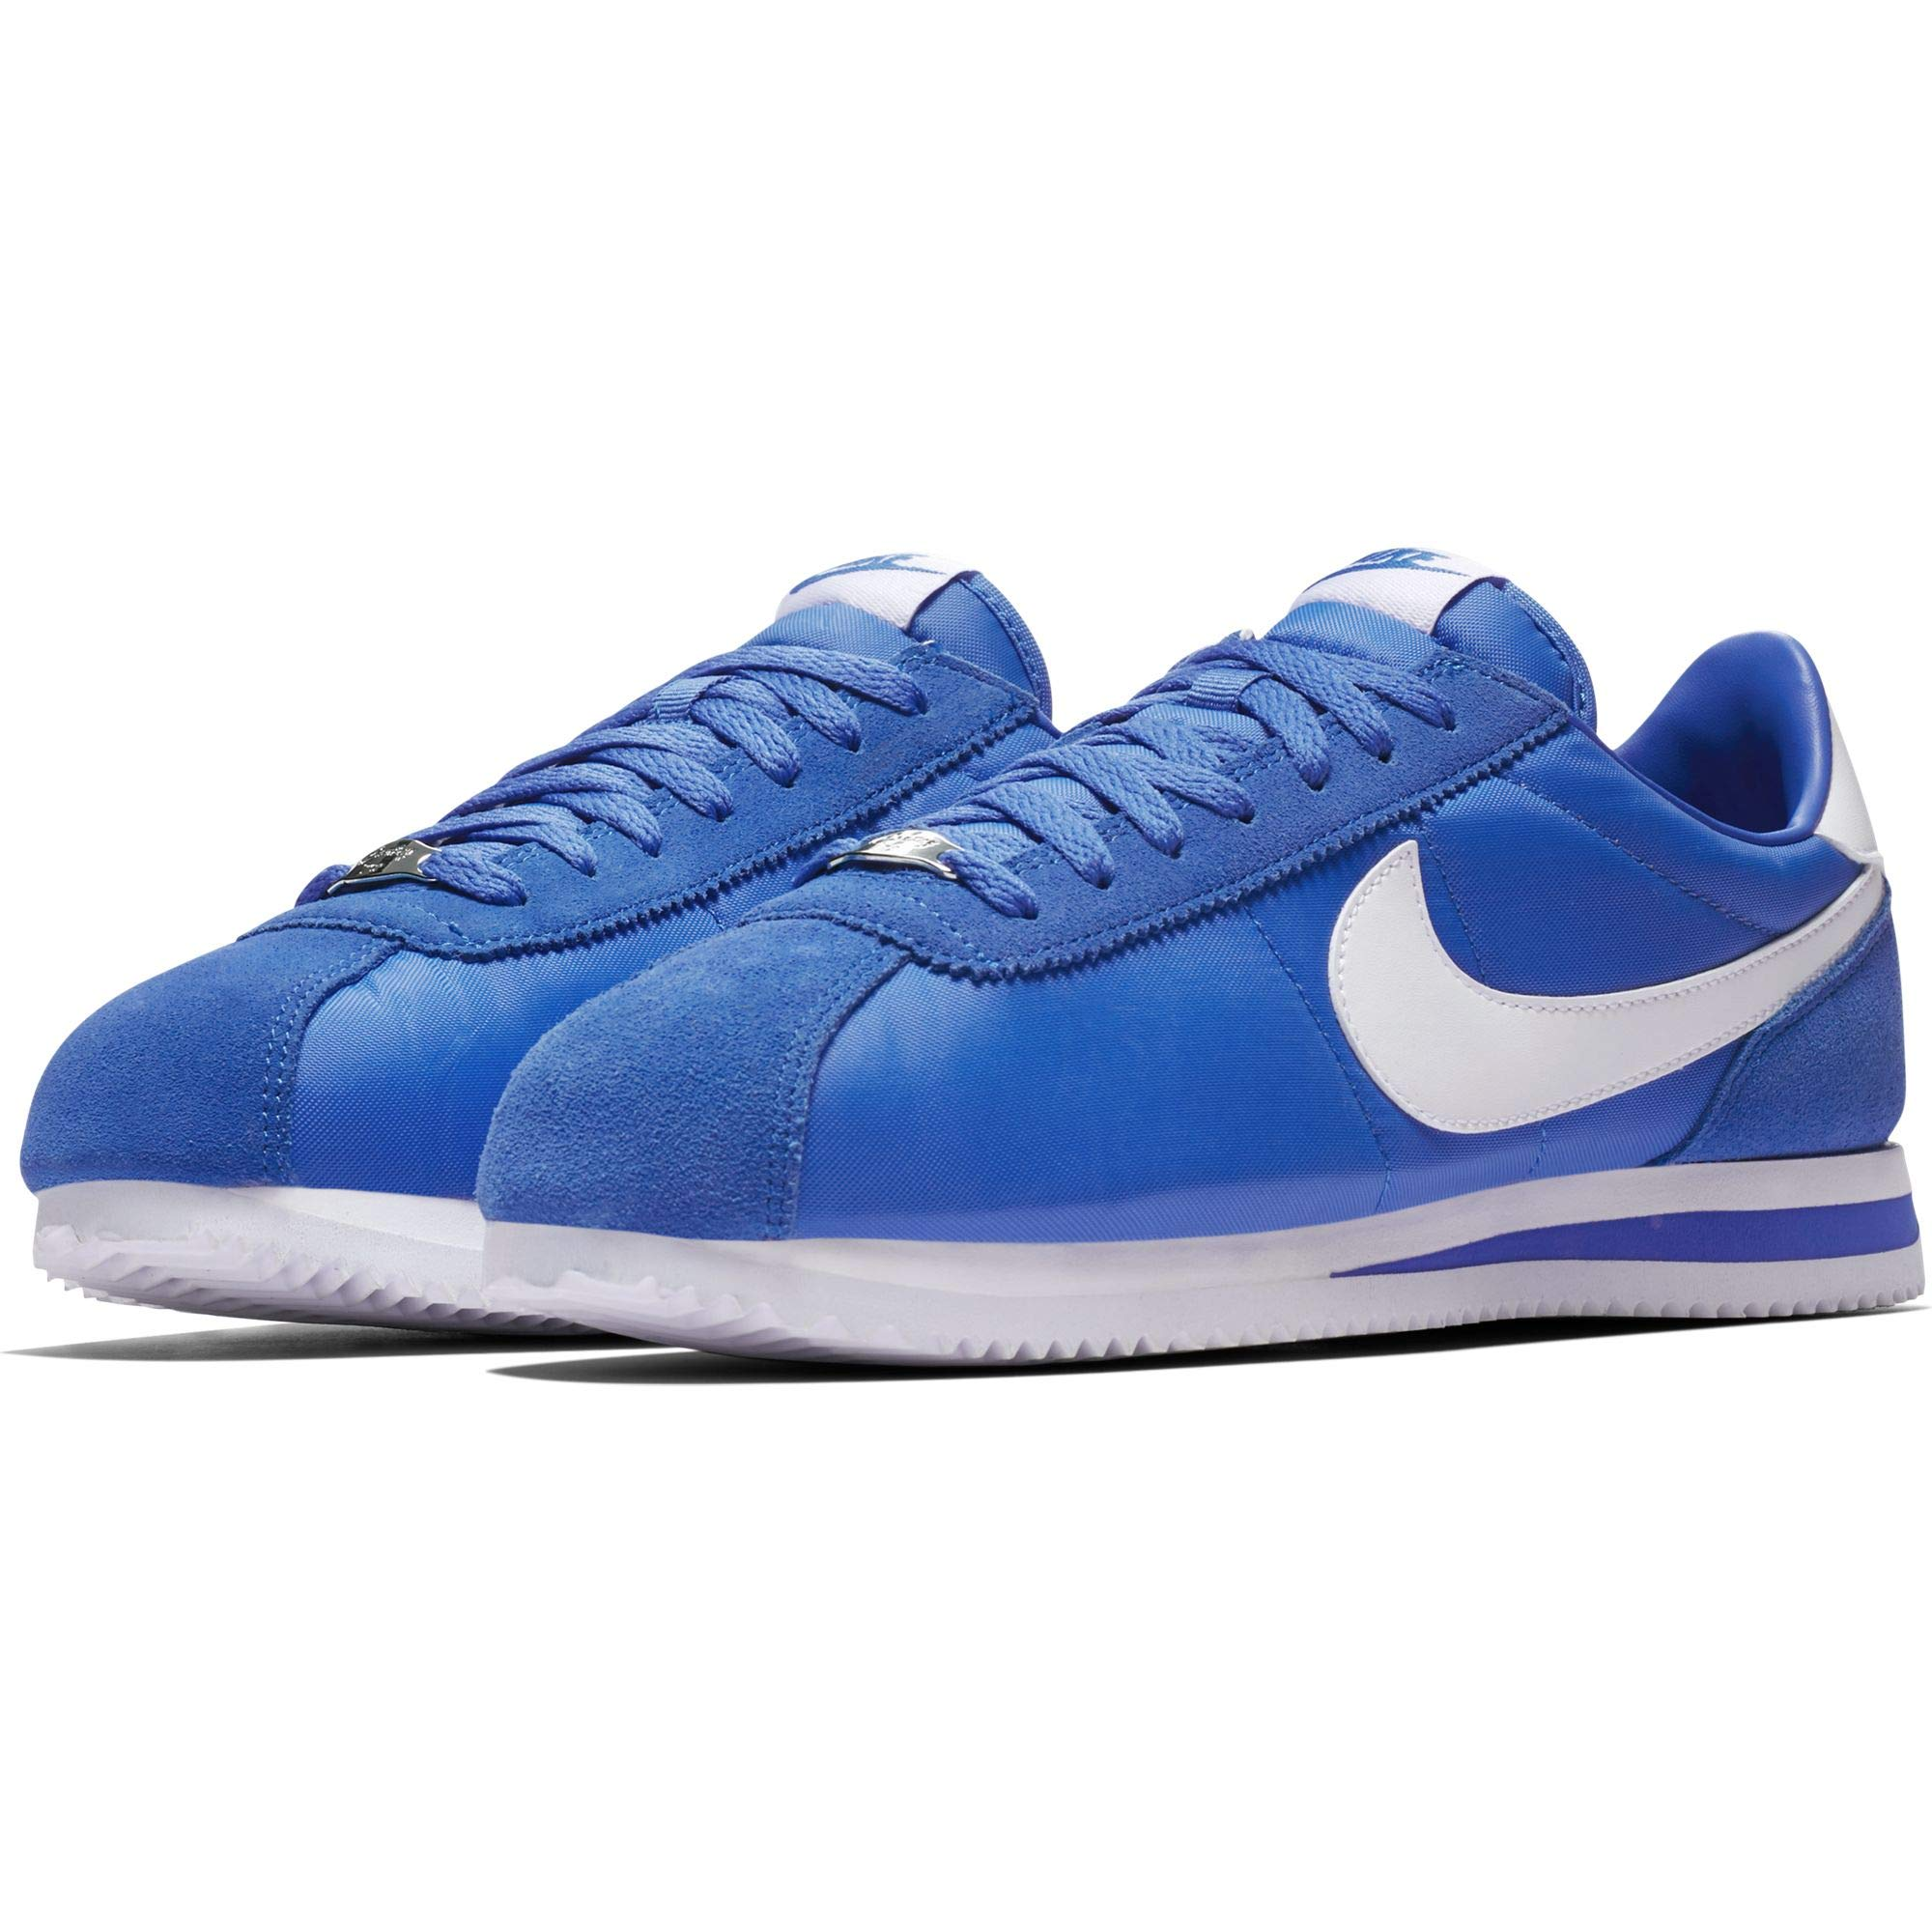 newest c485b 7a606 Galleon - Nike Cortez Basic Nylon Mens Fashion-Sneakers (Signal Blue White,  9 D(M) US)